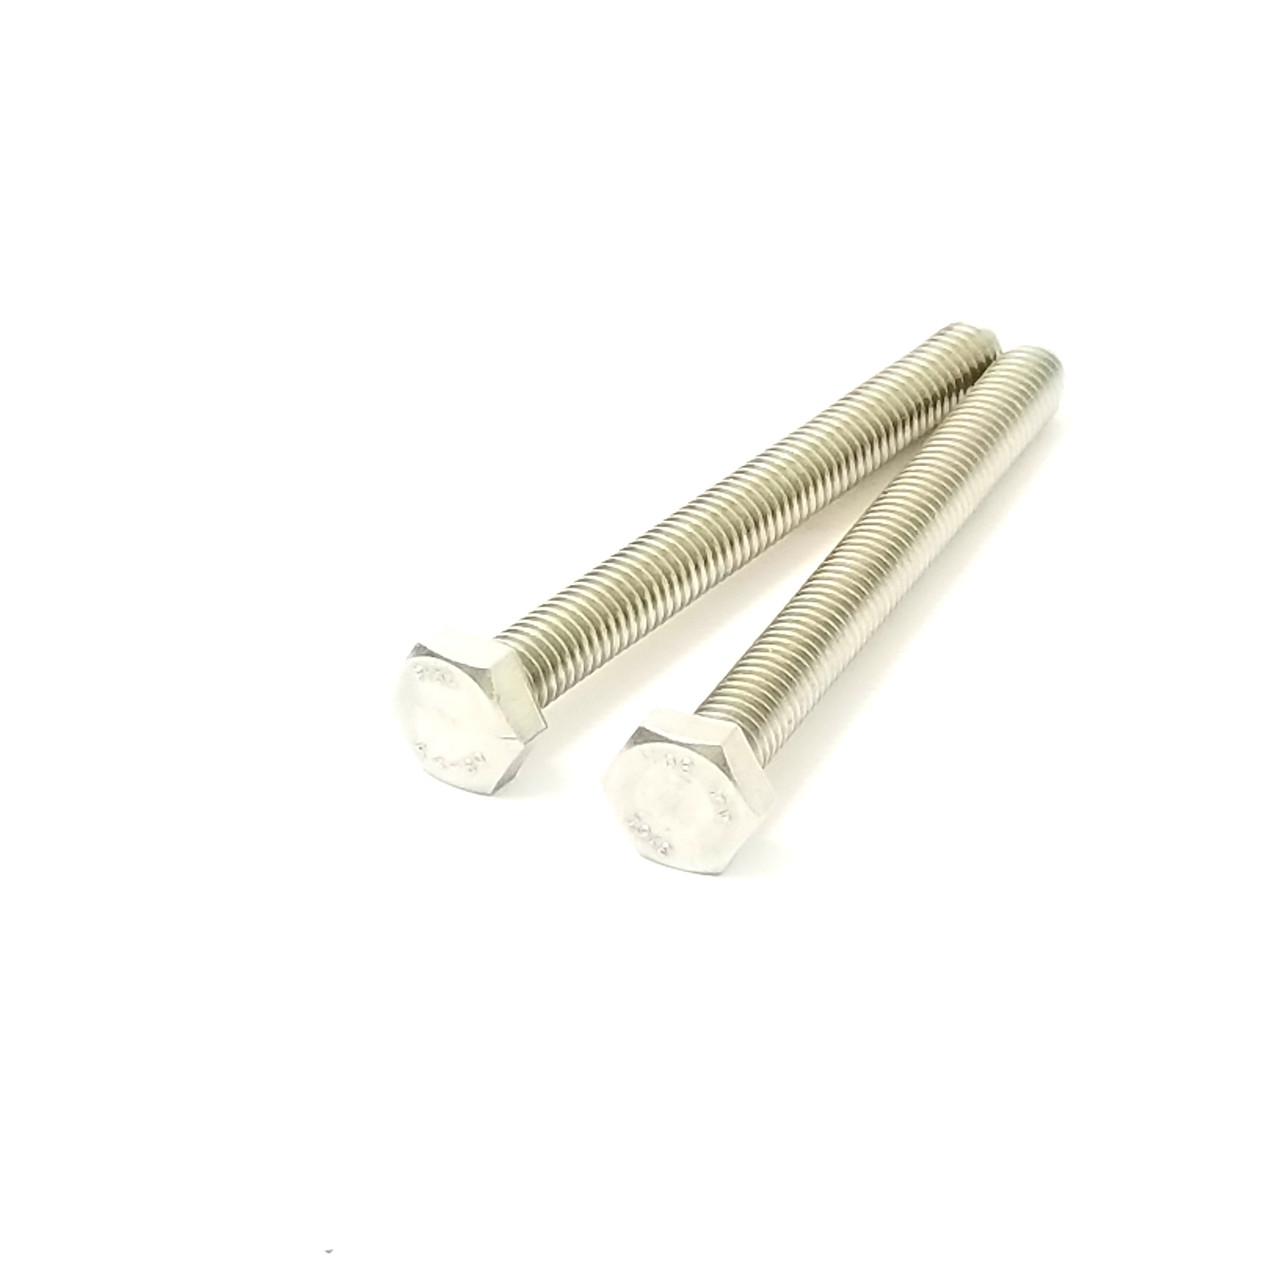 HHB3316 Hex head bolt M6x30 316 Stainless